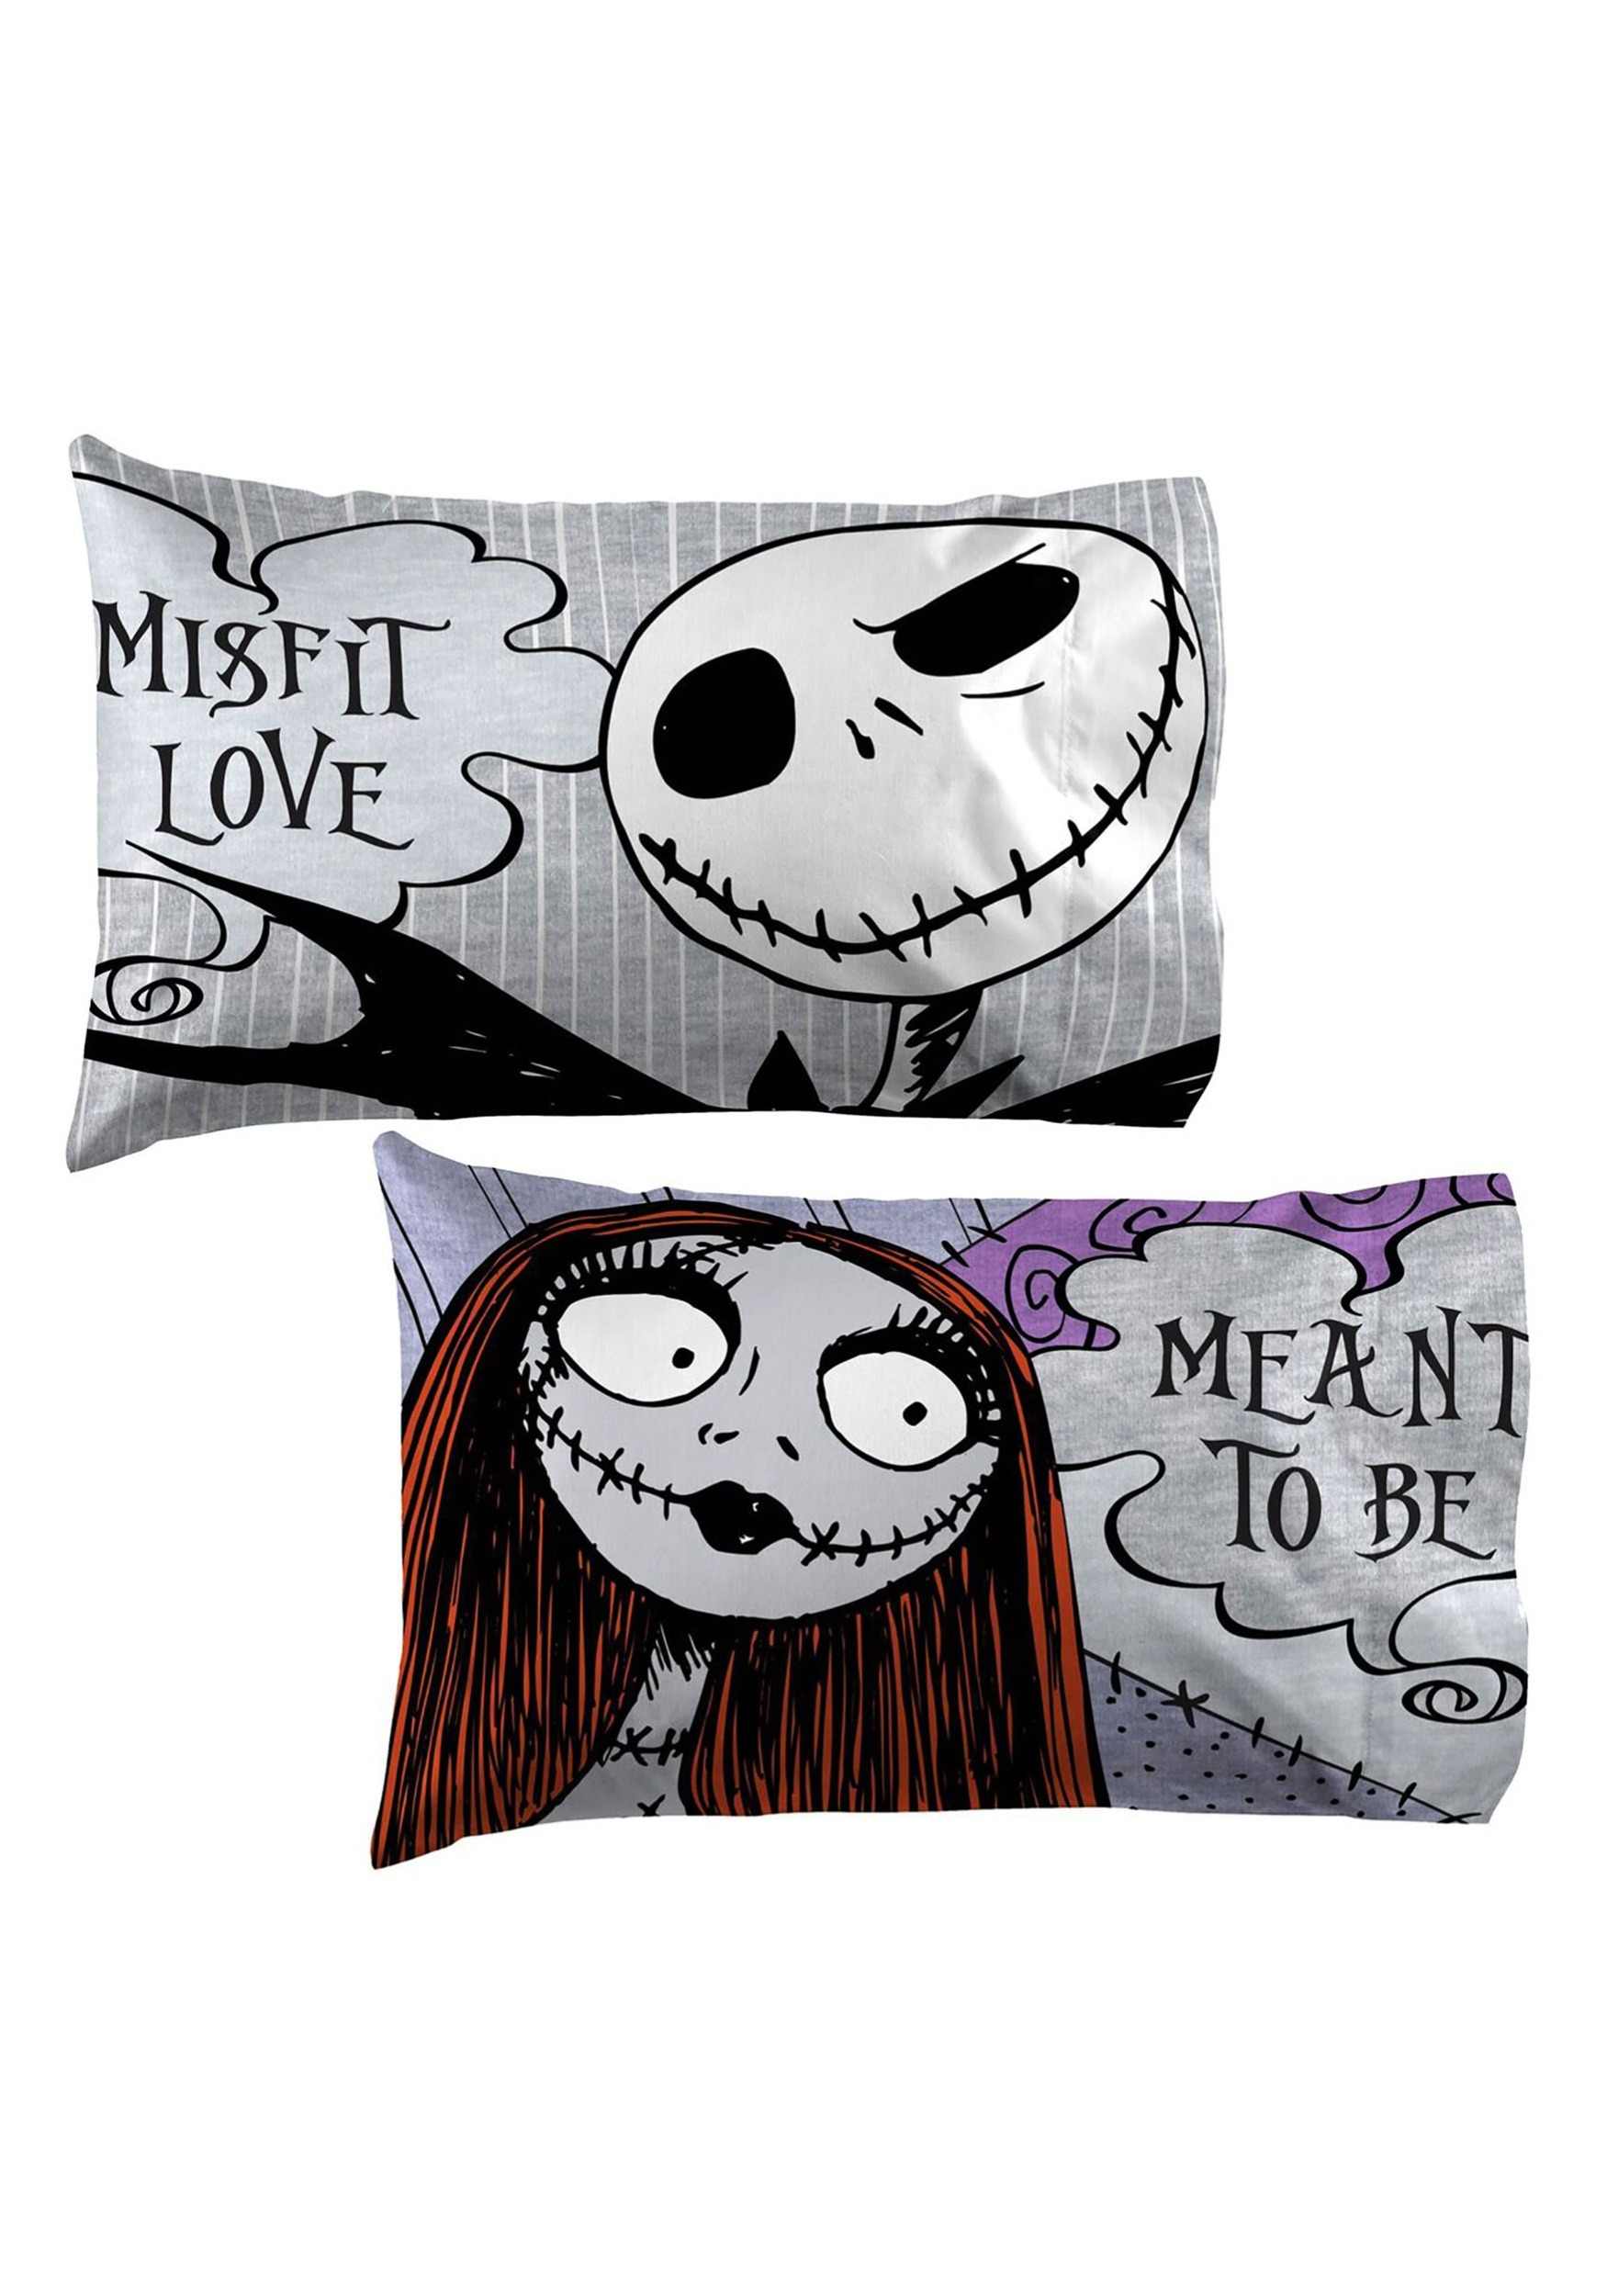 2-Pack Nightmare Before Christmas Meant To Be Pillowcase